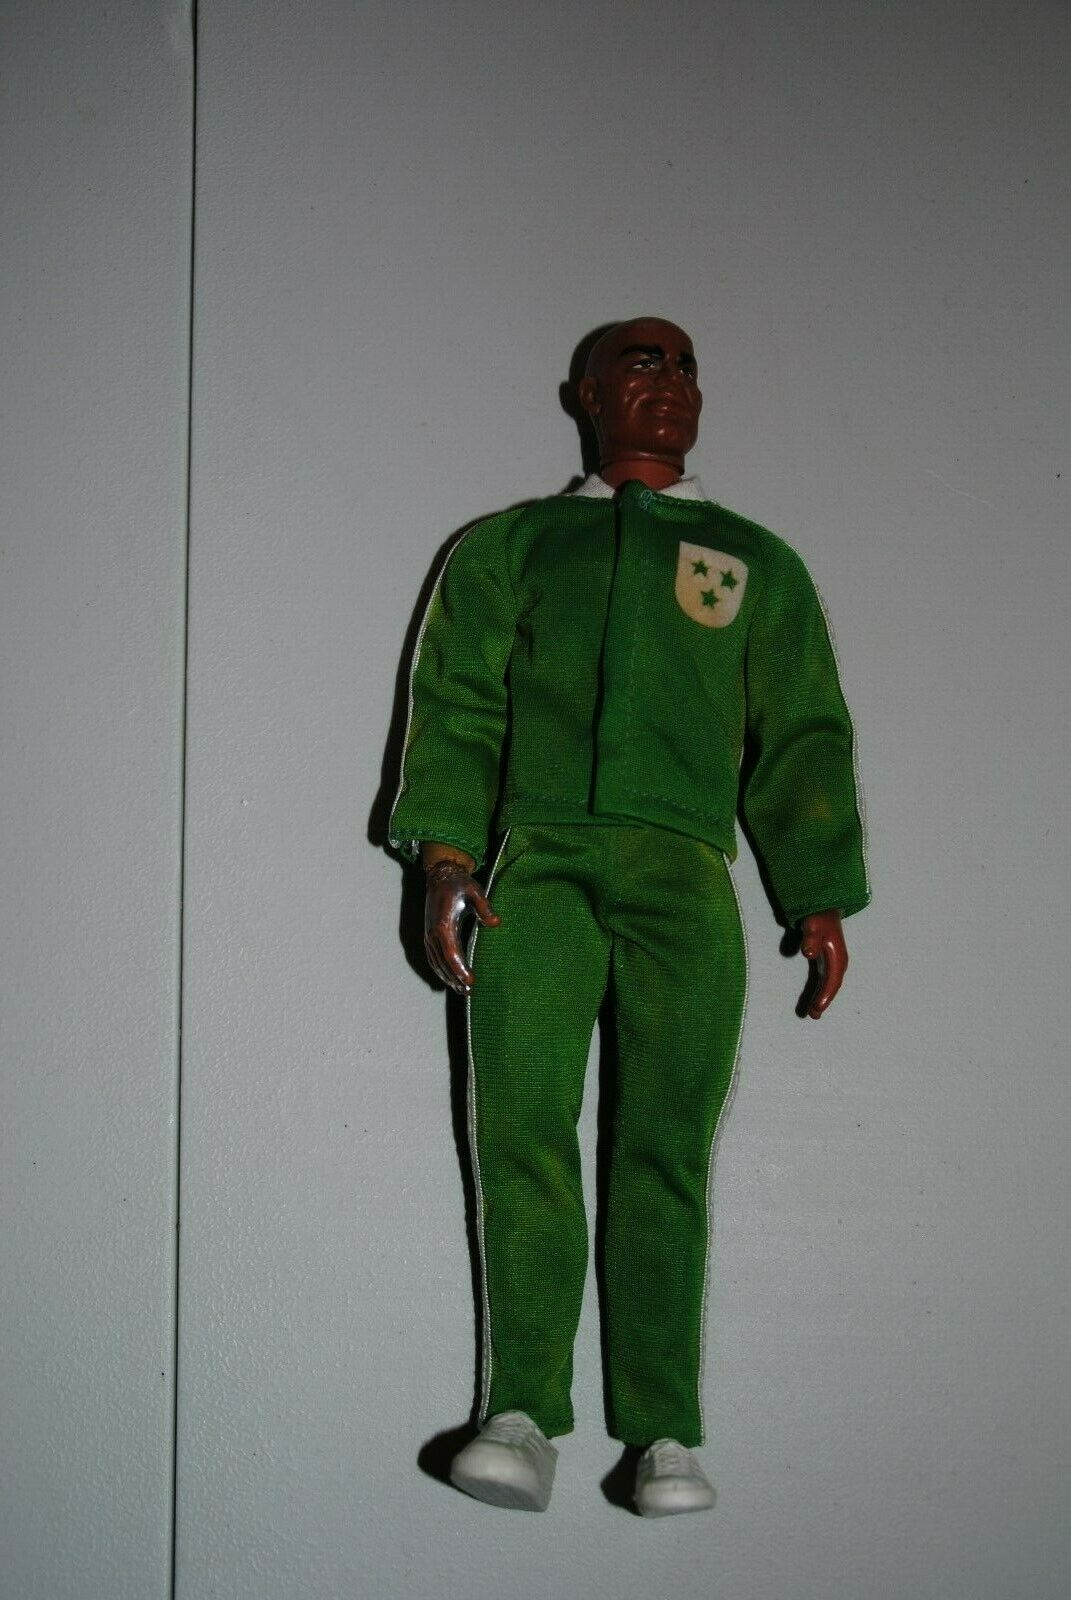 BIG JIM MATTEL     DR STEEL    SPORTSMAN GREEN  WARM-UP SUIT     OUTFT  ,NICE